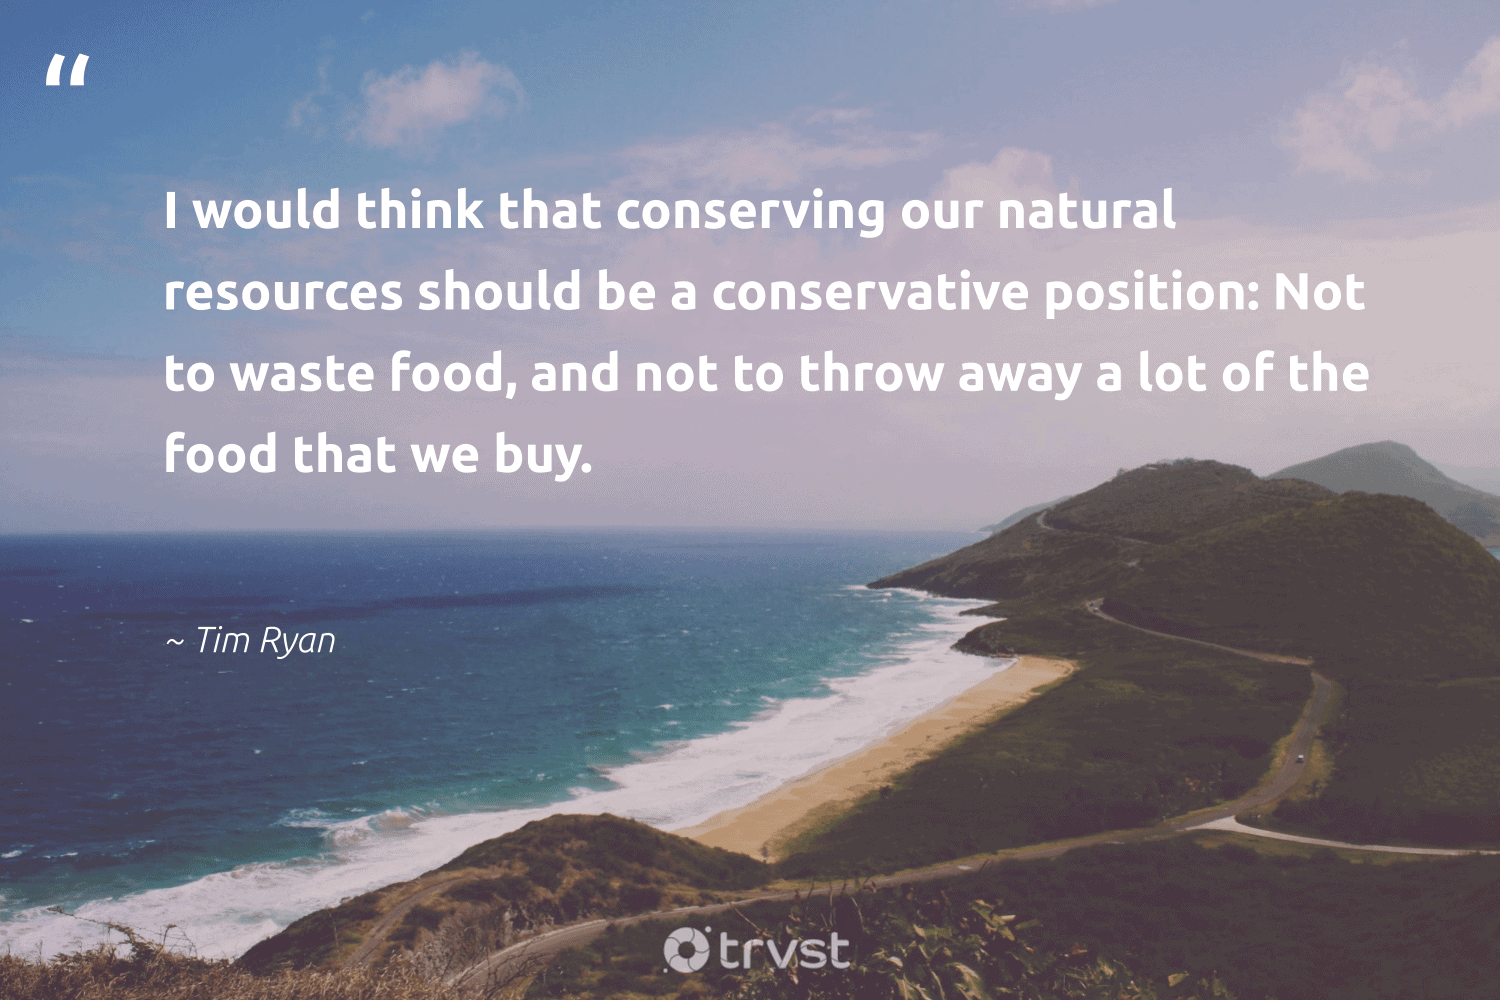 """""""I would think that conserving our natural resources should be a conservative position: Not to waste food, and not to throw away a lot of the food that we buy.""""  - Tim Ryan #trvst #quotes #foodwaste #waste #wastefood #natural #food #endhunger #ecofriendly #dogood #socialimpact #sustainablefood"""